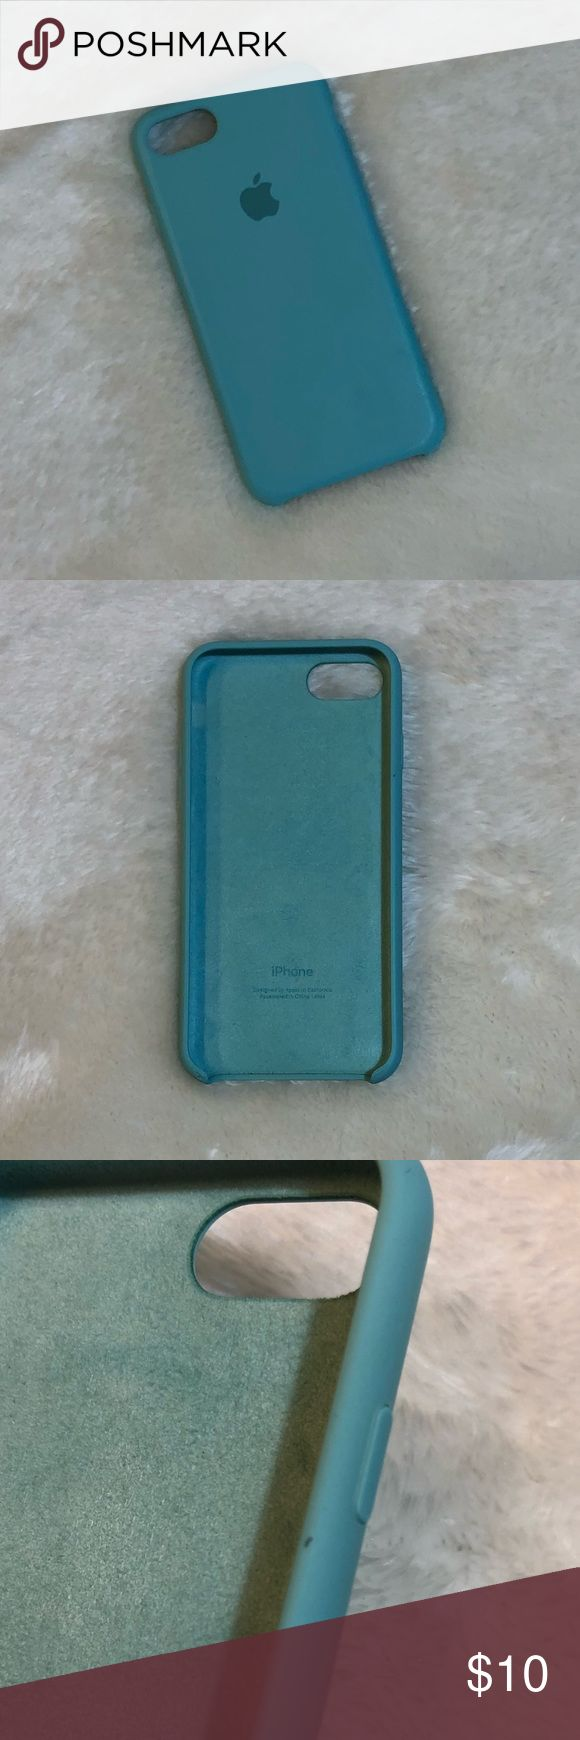 Apple iphone 7 silicone case Used in good condition. Sea blue color bought from Apple store. With very minimal signs of wear on the side and bottom which is not noticeable unless you have to look really close. Please see  3rd and last photo for reference. Price drop reflects that. Apple Accessories Phone Cases